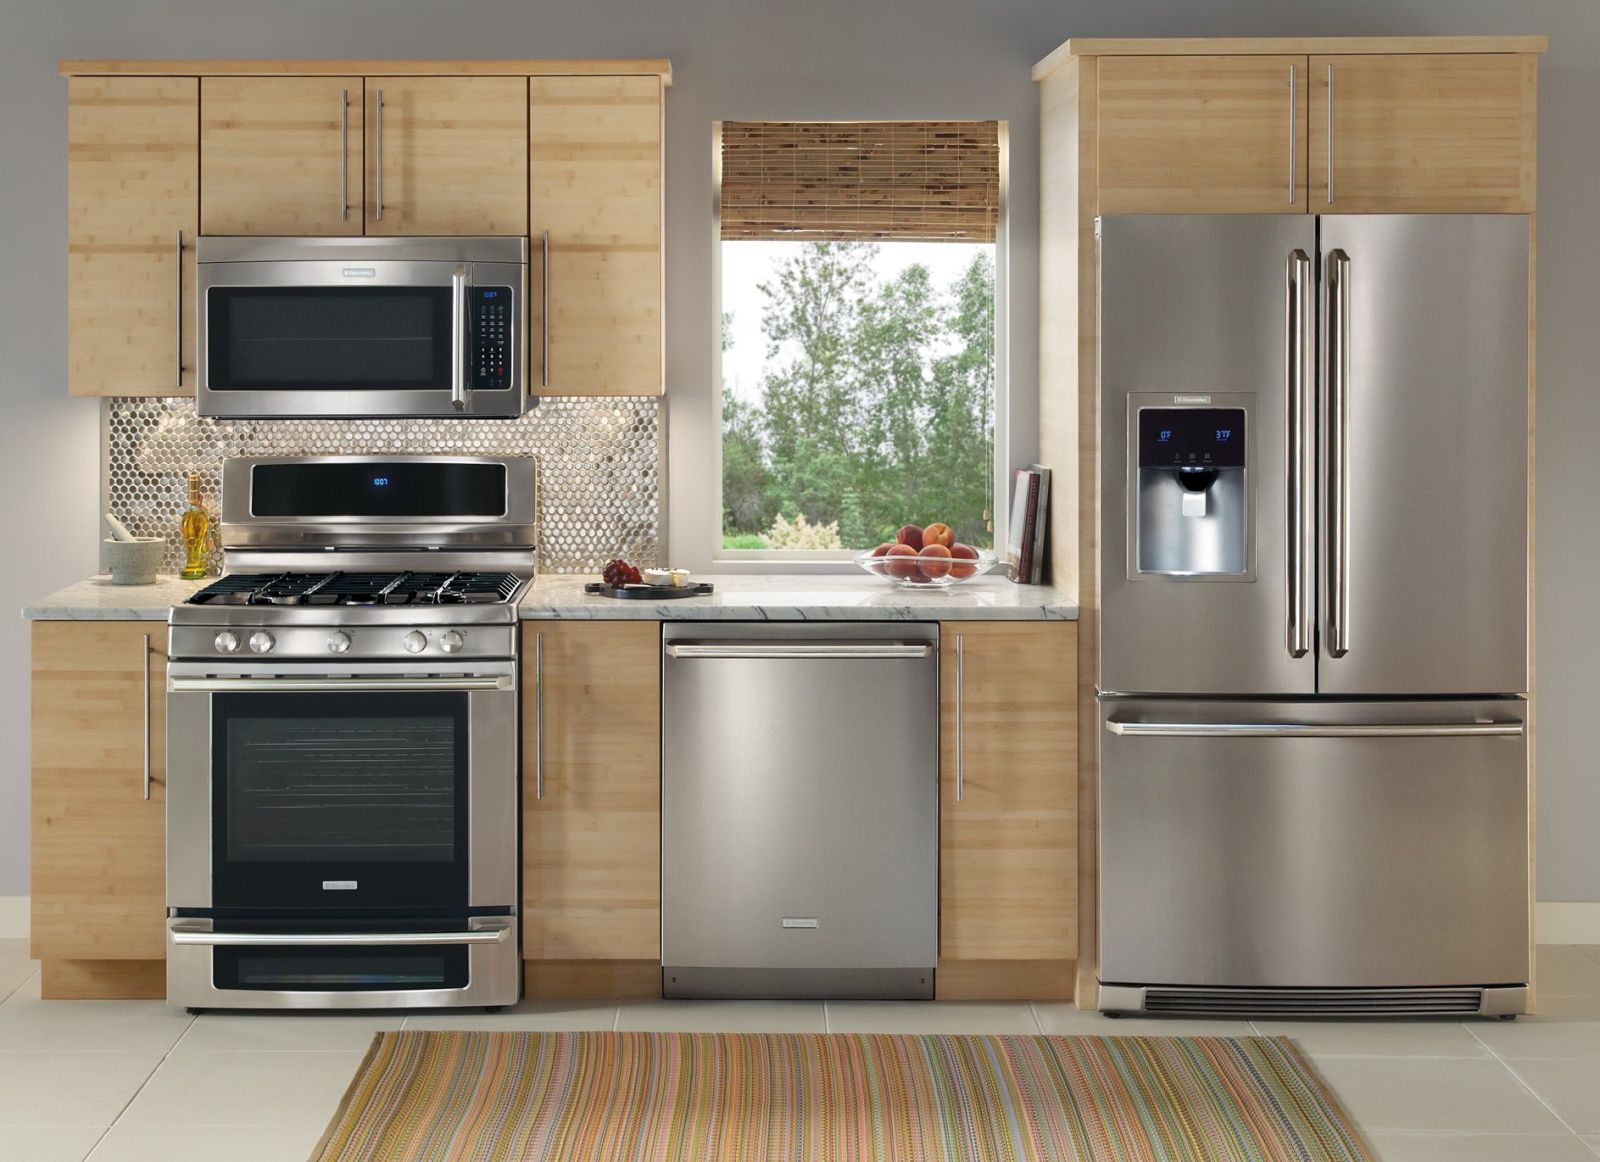 Modern Kitchen Of 2018 6 Smart Appliances You Must Have